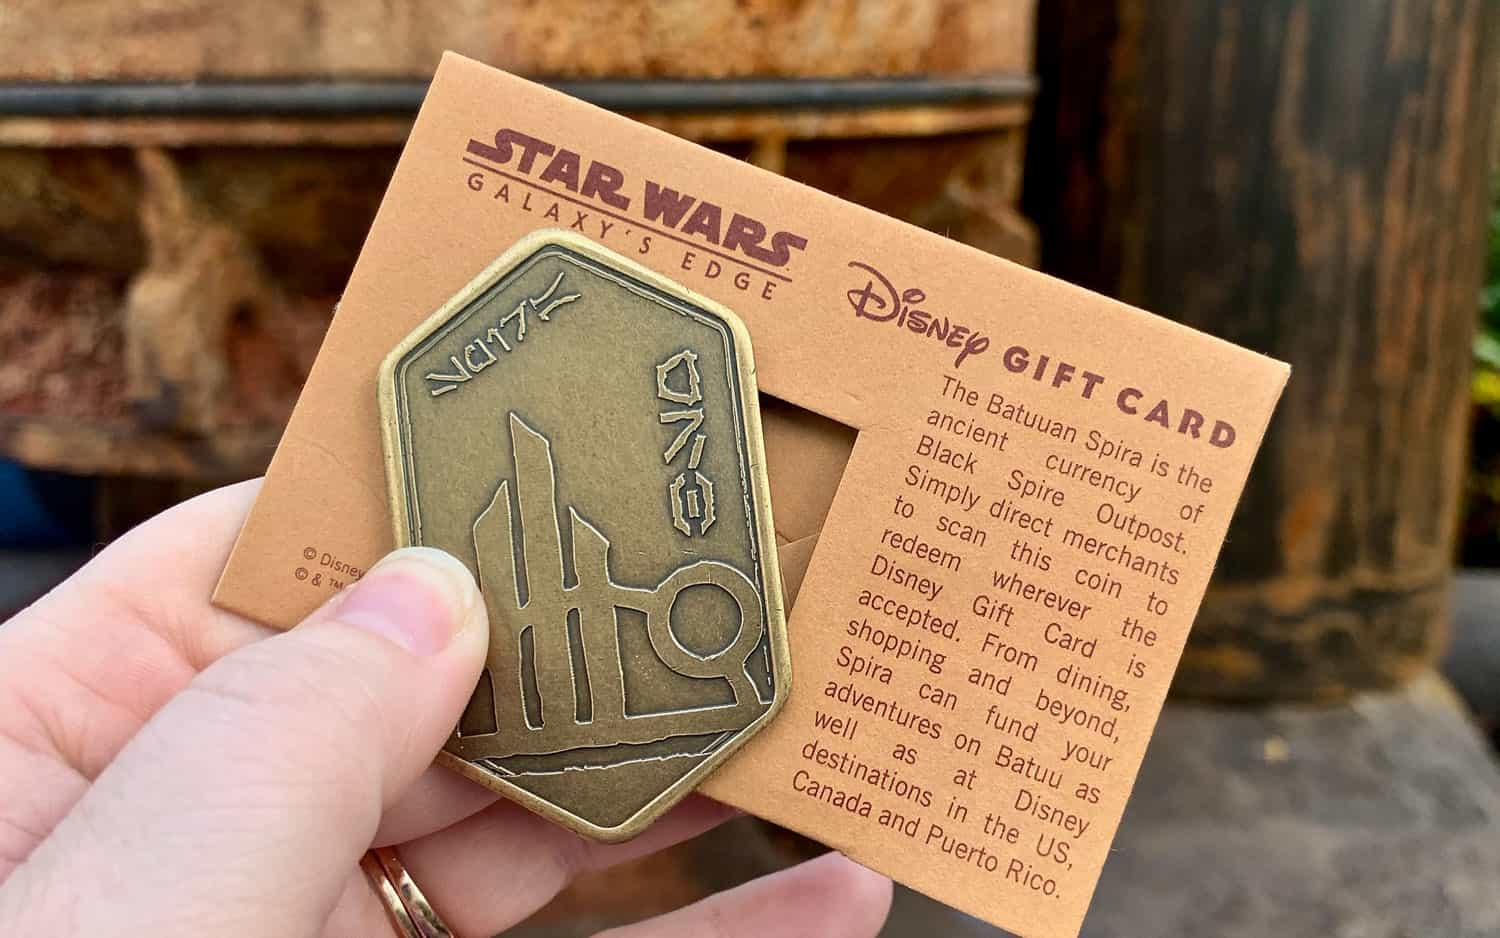 Star Wars Galaxy's Edge Gift Card Batuuan Spira • WDW